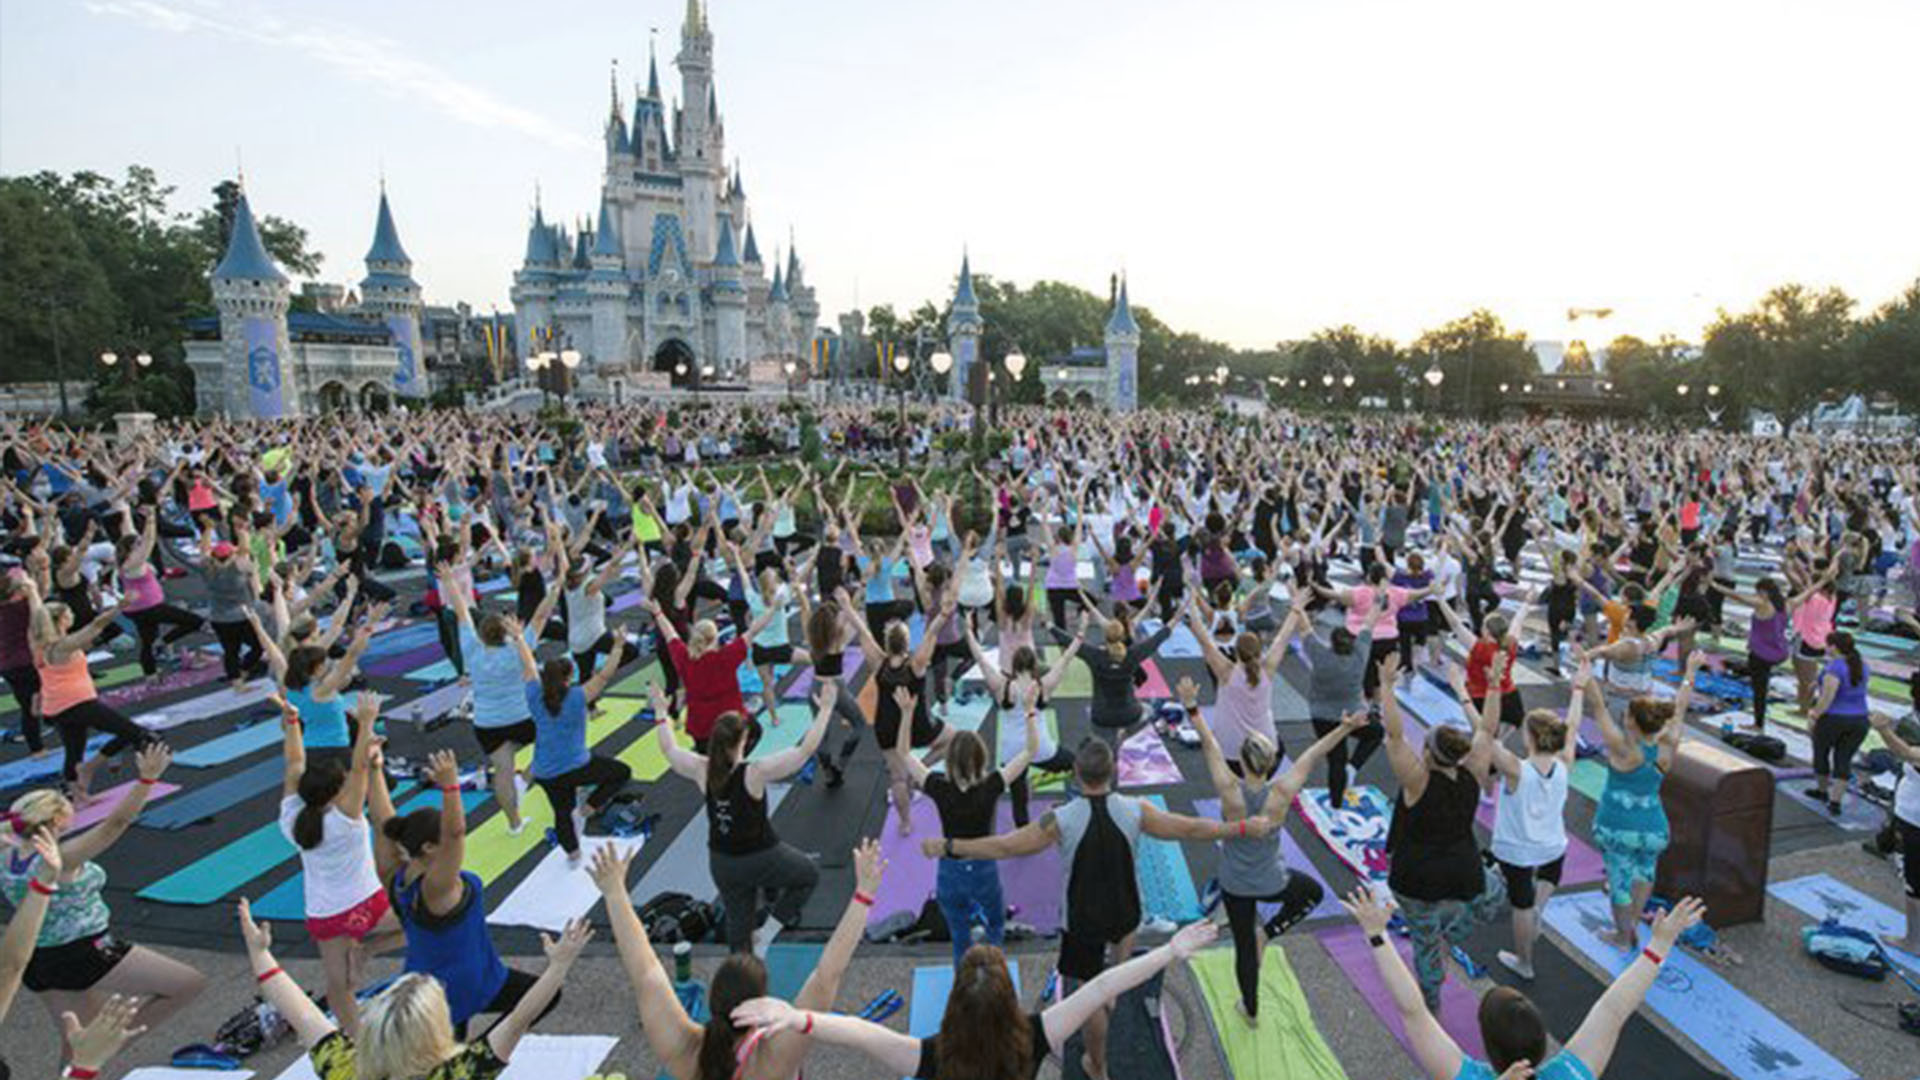 Thousands Of Employees Do Yoga In Front Of Disney Castles